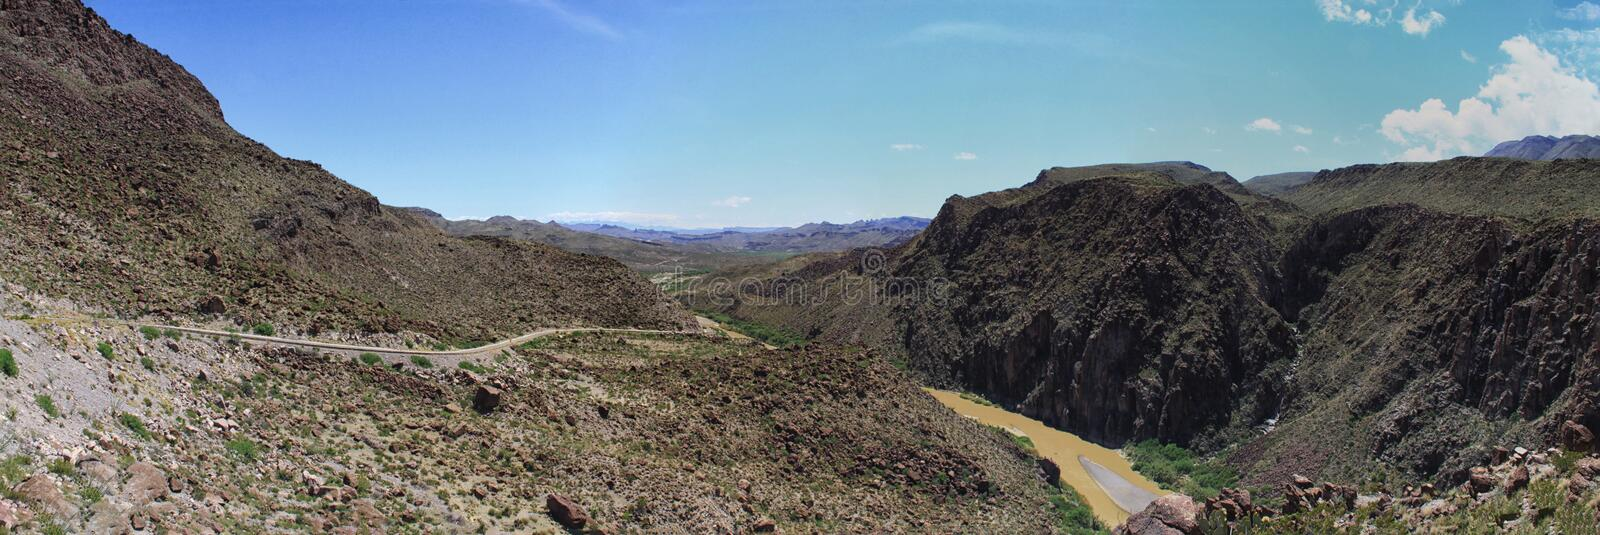 Rio Grande River on the Mexican and United States Border. Rocky shore and jagged cliffs along the Rio Grande river that shows the Mexico and United States Border royalty free stock photo